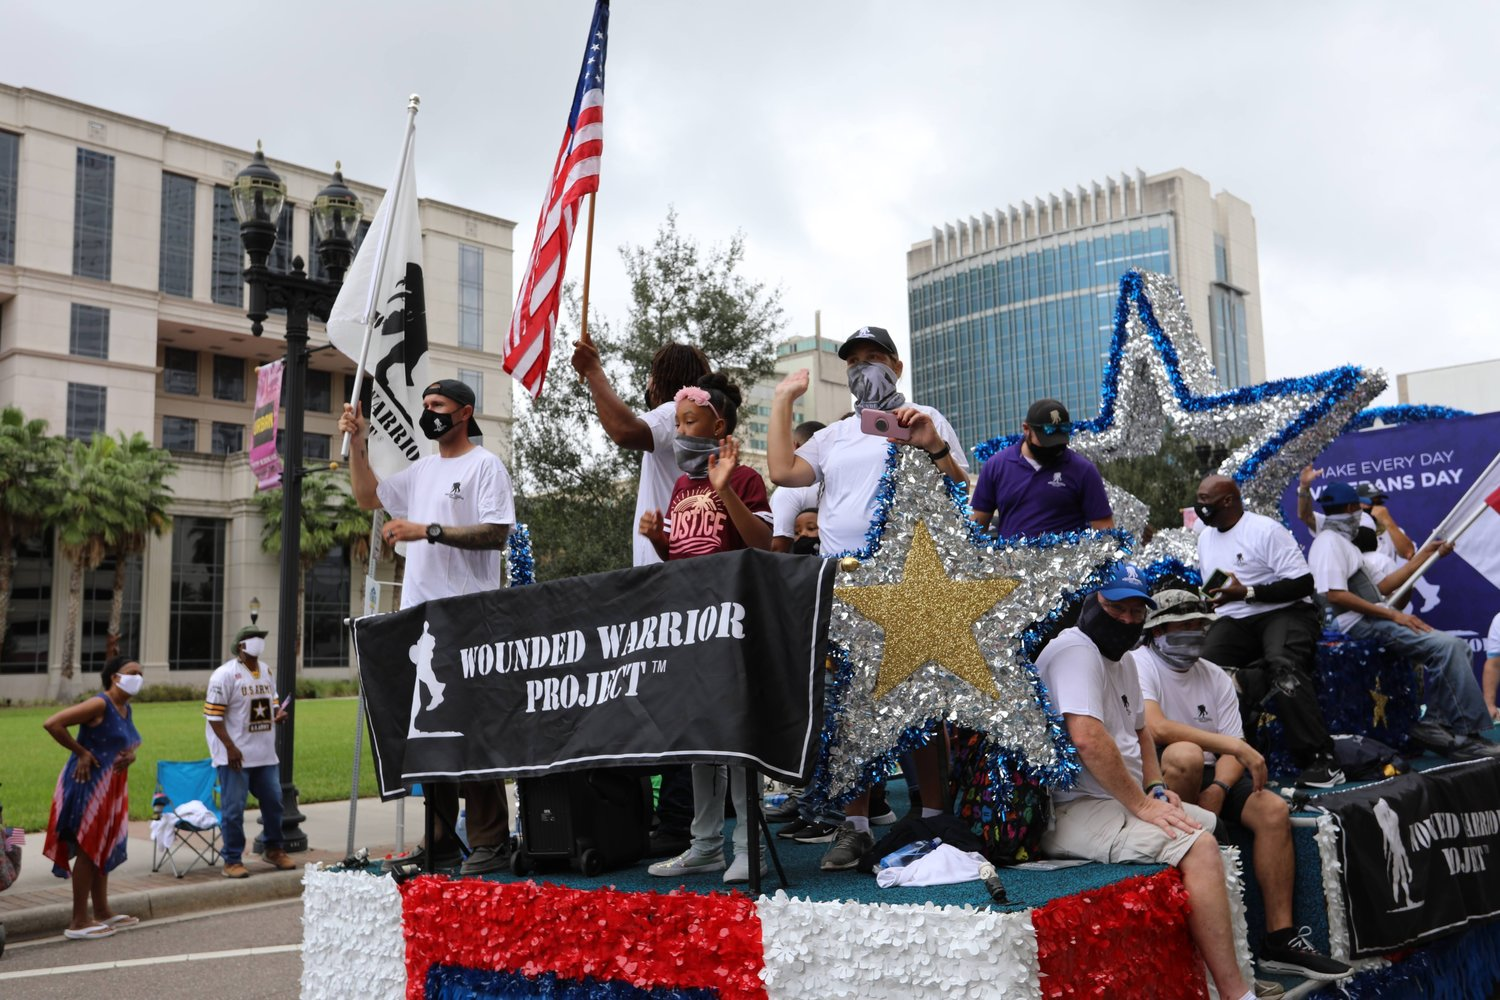 Wounded Warriors Project had a float in this year's Veterans Day parade in Jacksonville.